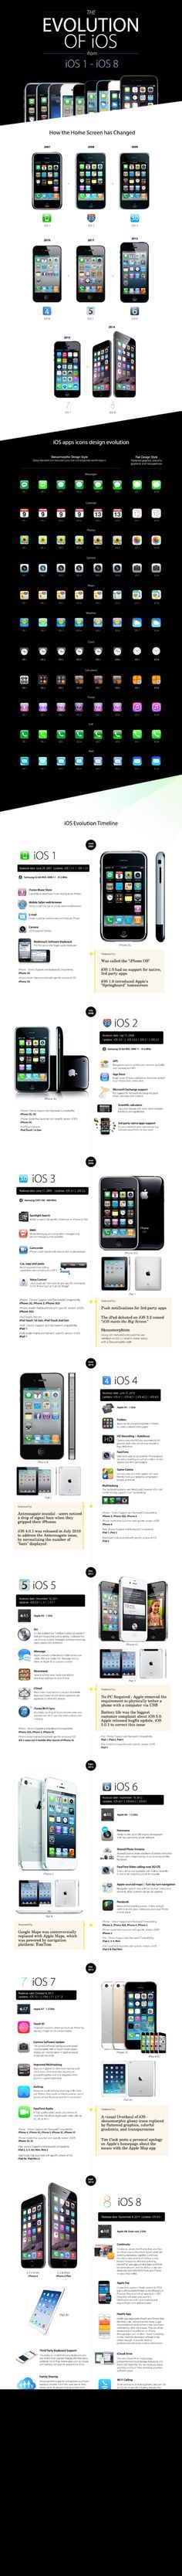 This amazing graphic shows iOS's evolution from original iPhone to iPhone 6 / TechNews24h.com